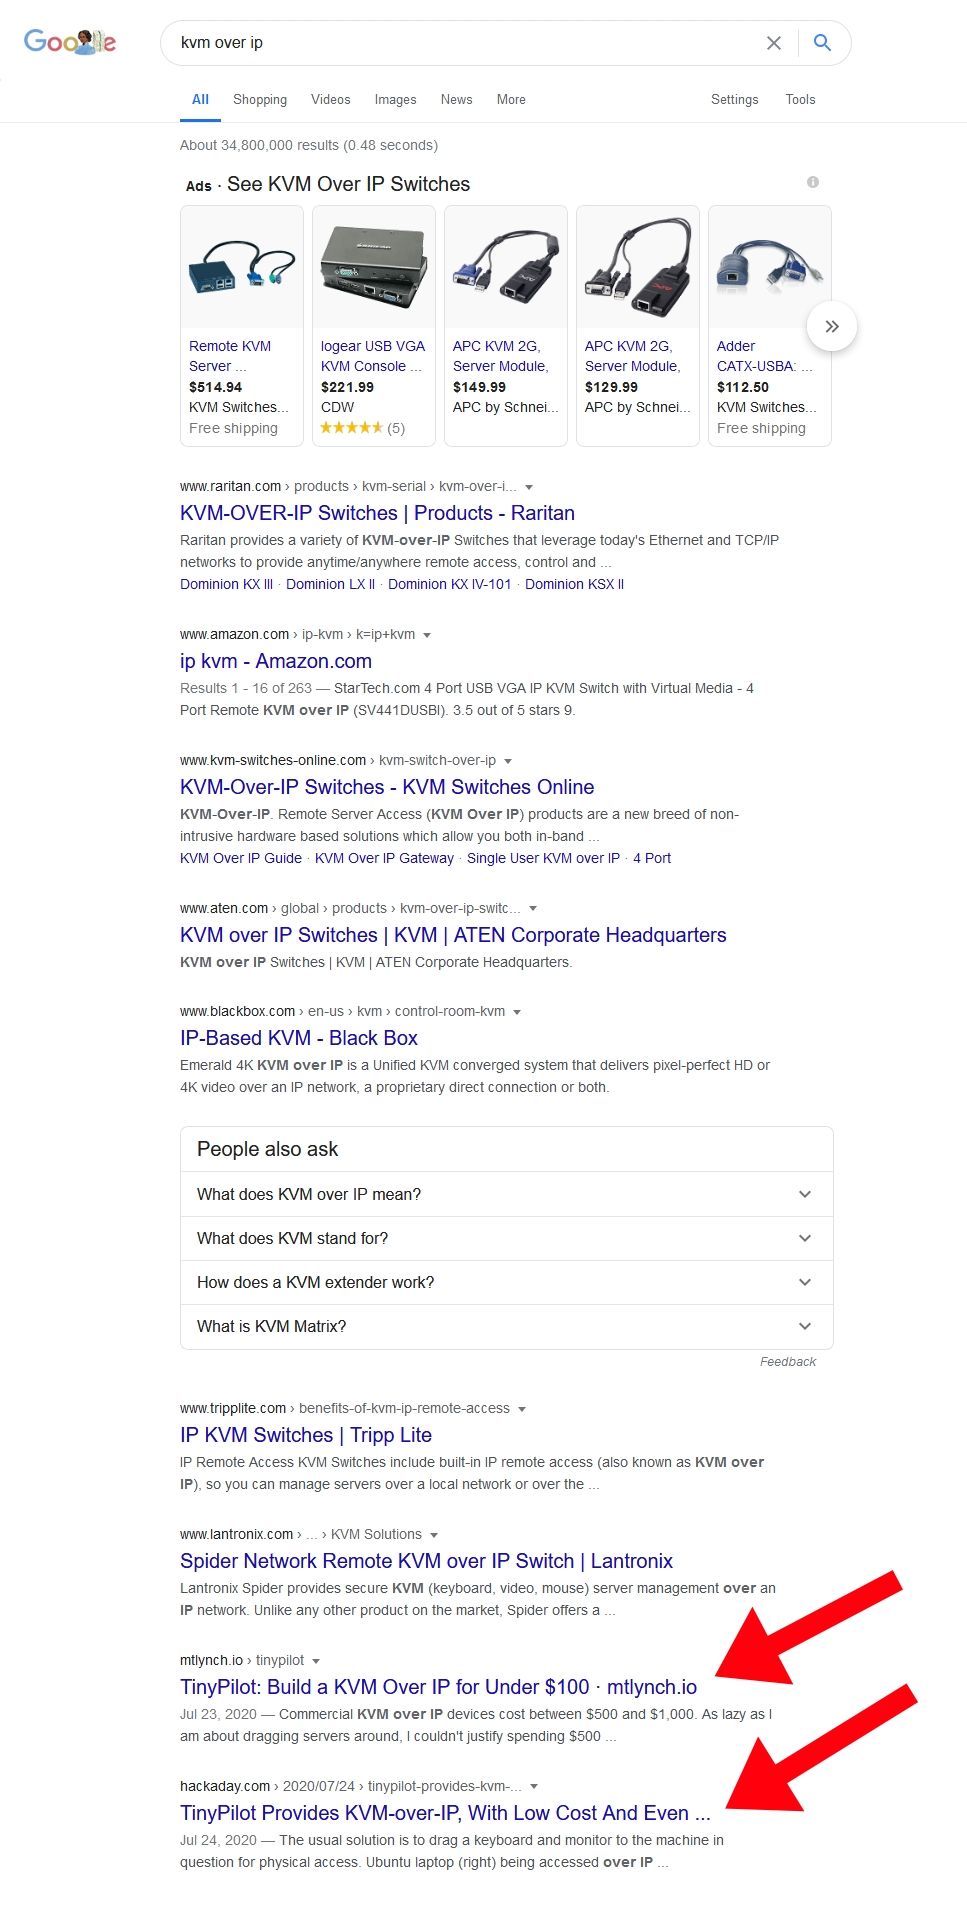 Screenshot of Google search results showing TinyPilot at the bottom of the first page of results